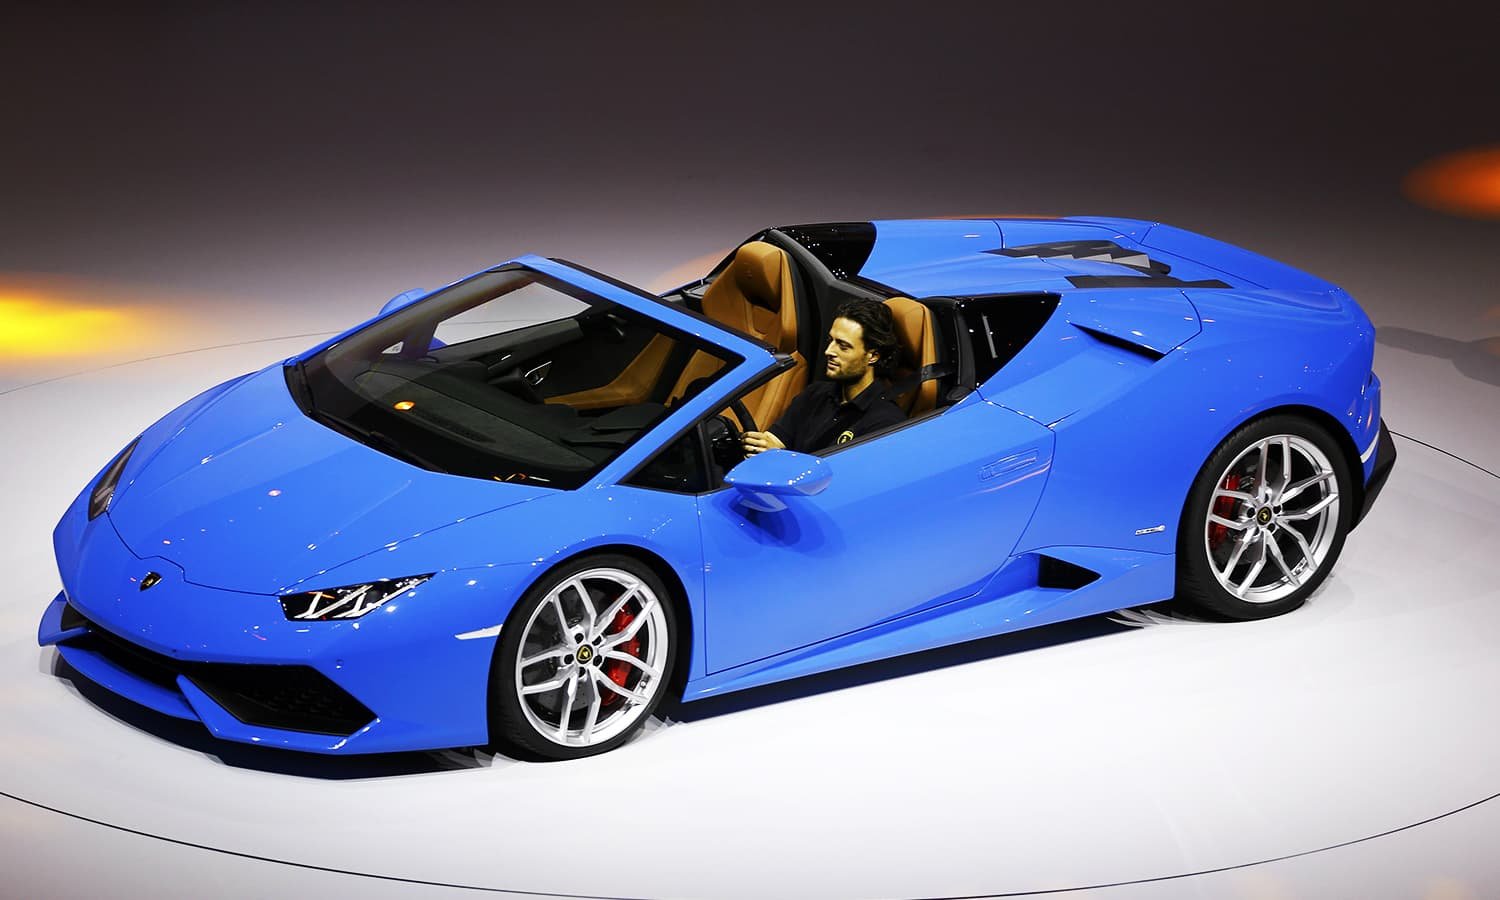 Lamborghini Huracan LP 610-4 Spyder is presented during the Volkswagen group night ahead of the motor show. ─ AFP